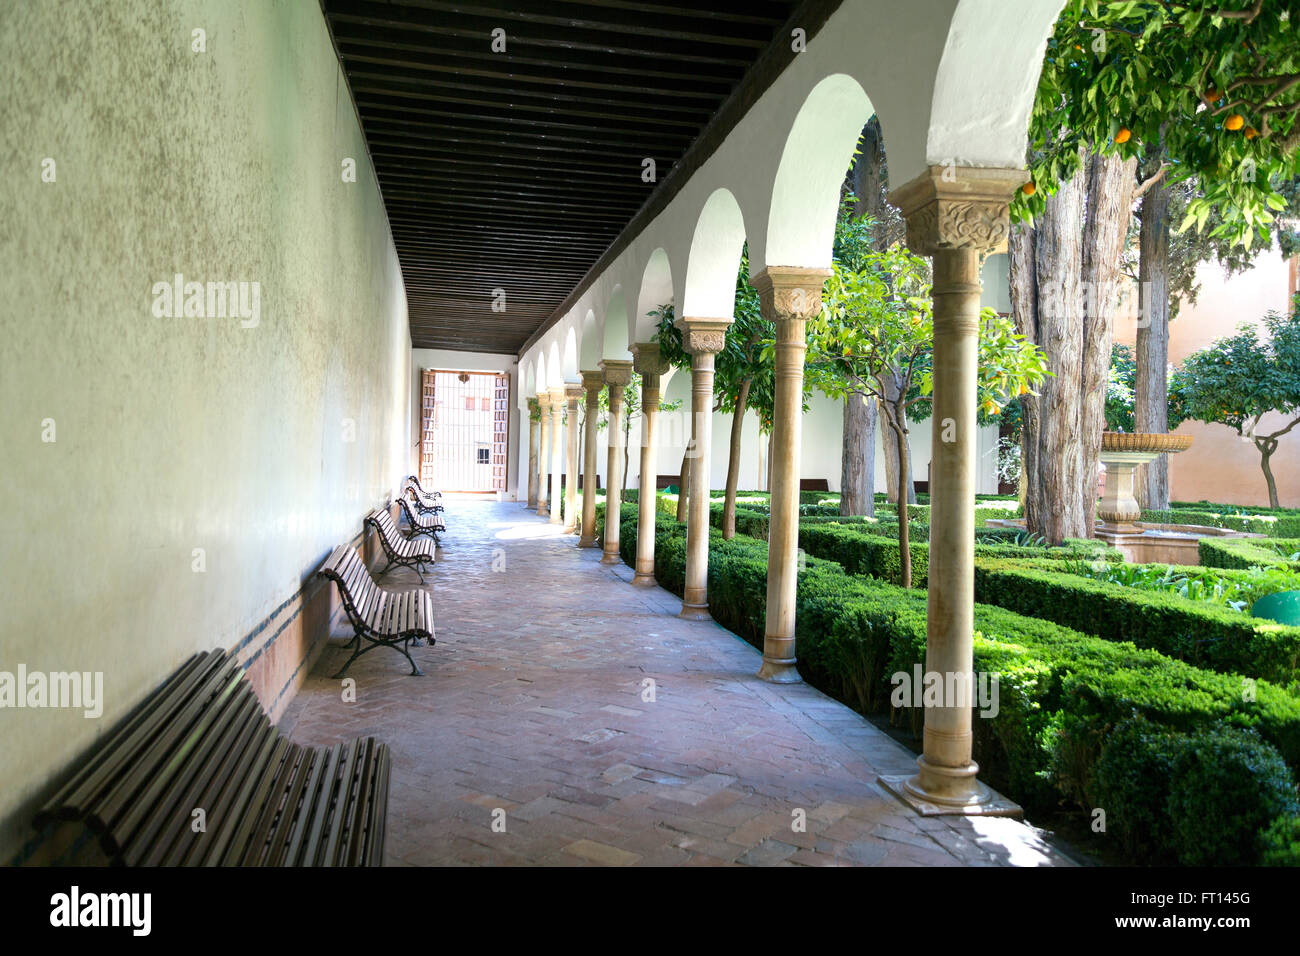 A walking tour of the city of Granada inside the Alhambra Palace with view of the interior garden. Stock Photo